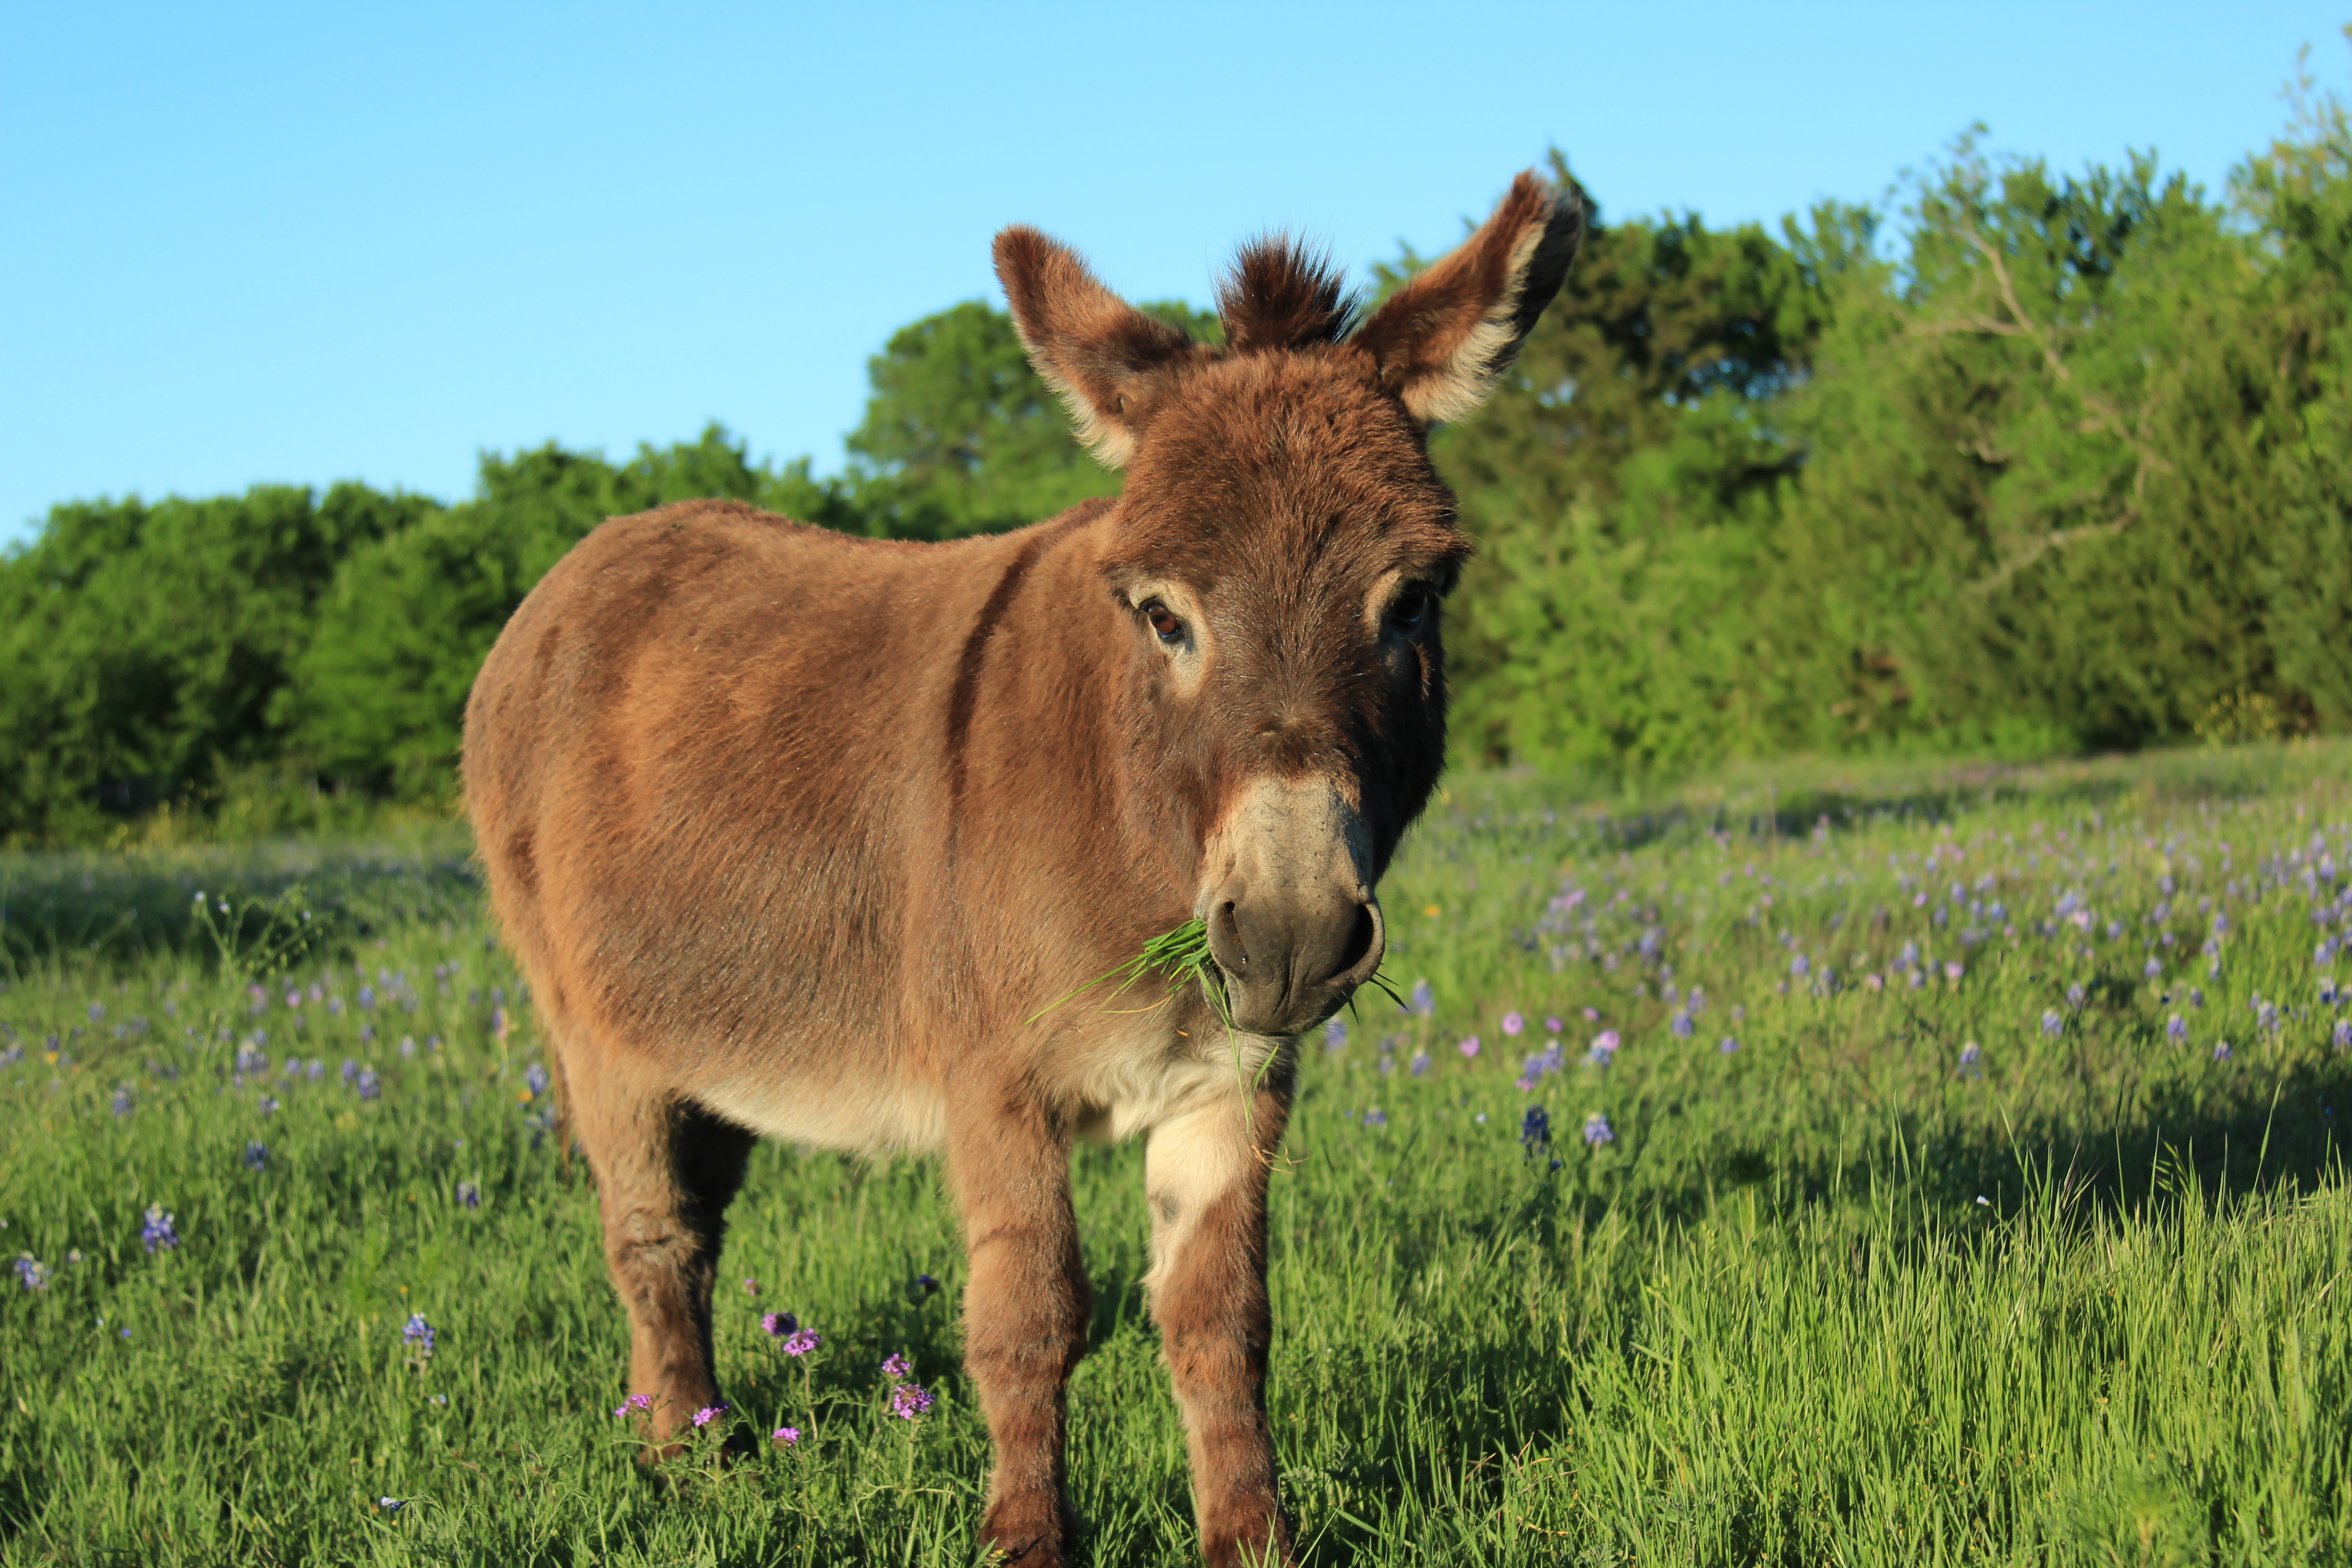 Home Sanctuary: Flash the Donkey